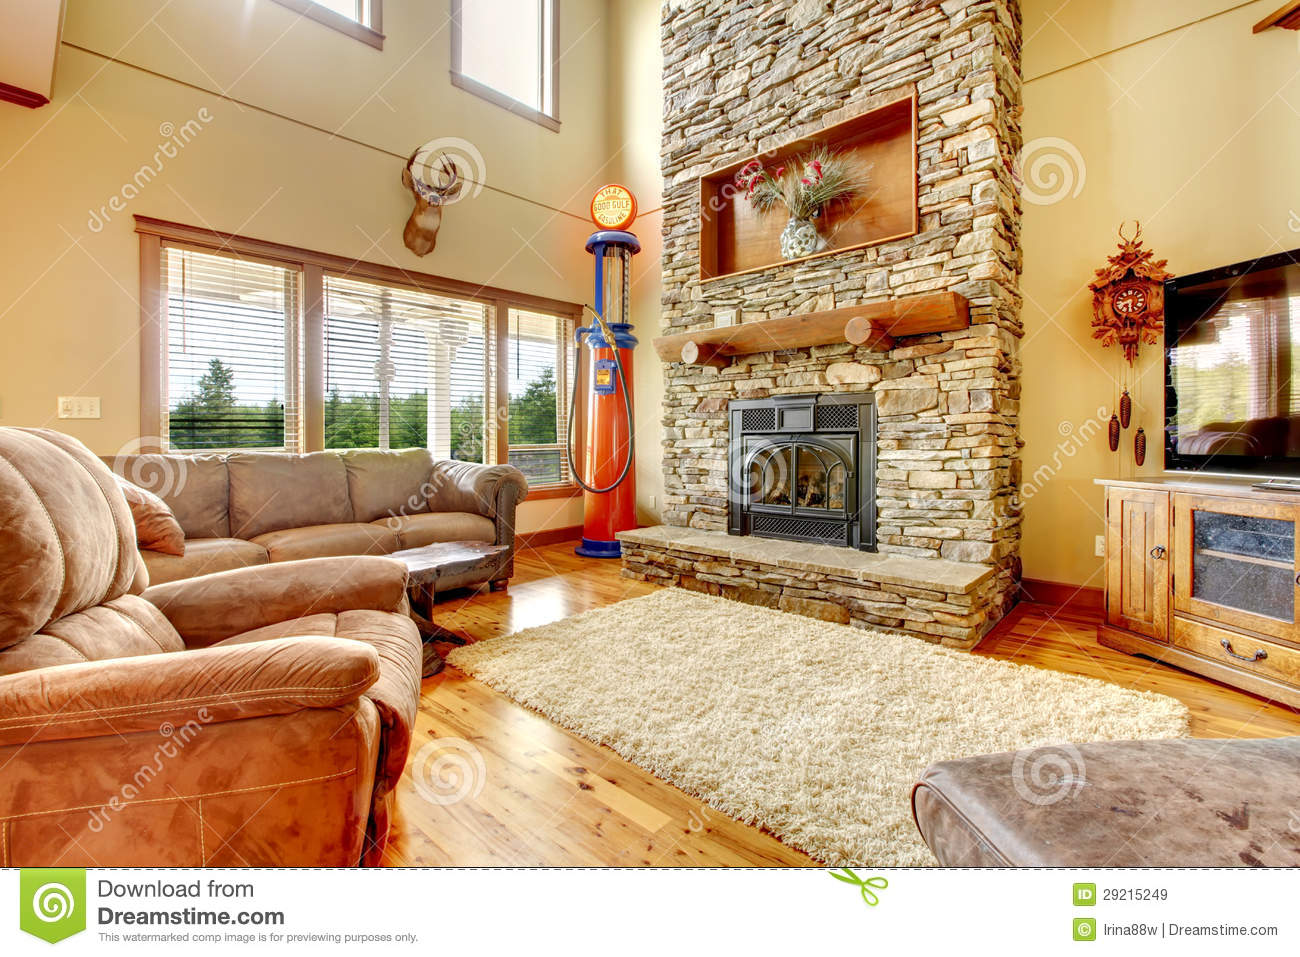 Living Room High Ceiling Stone Fireplace Leather Sofa Stock Photos 8 Images